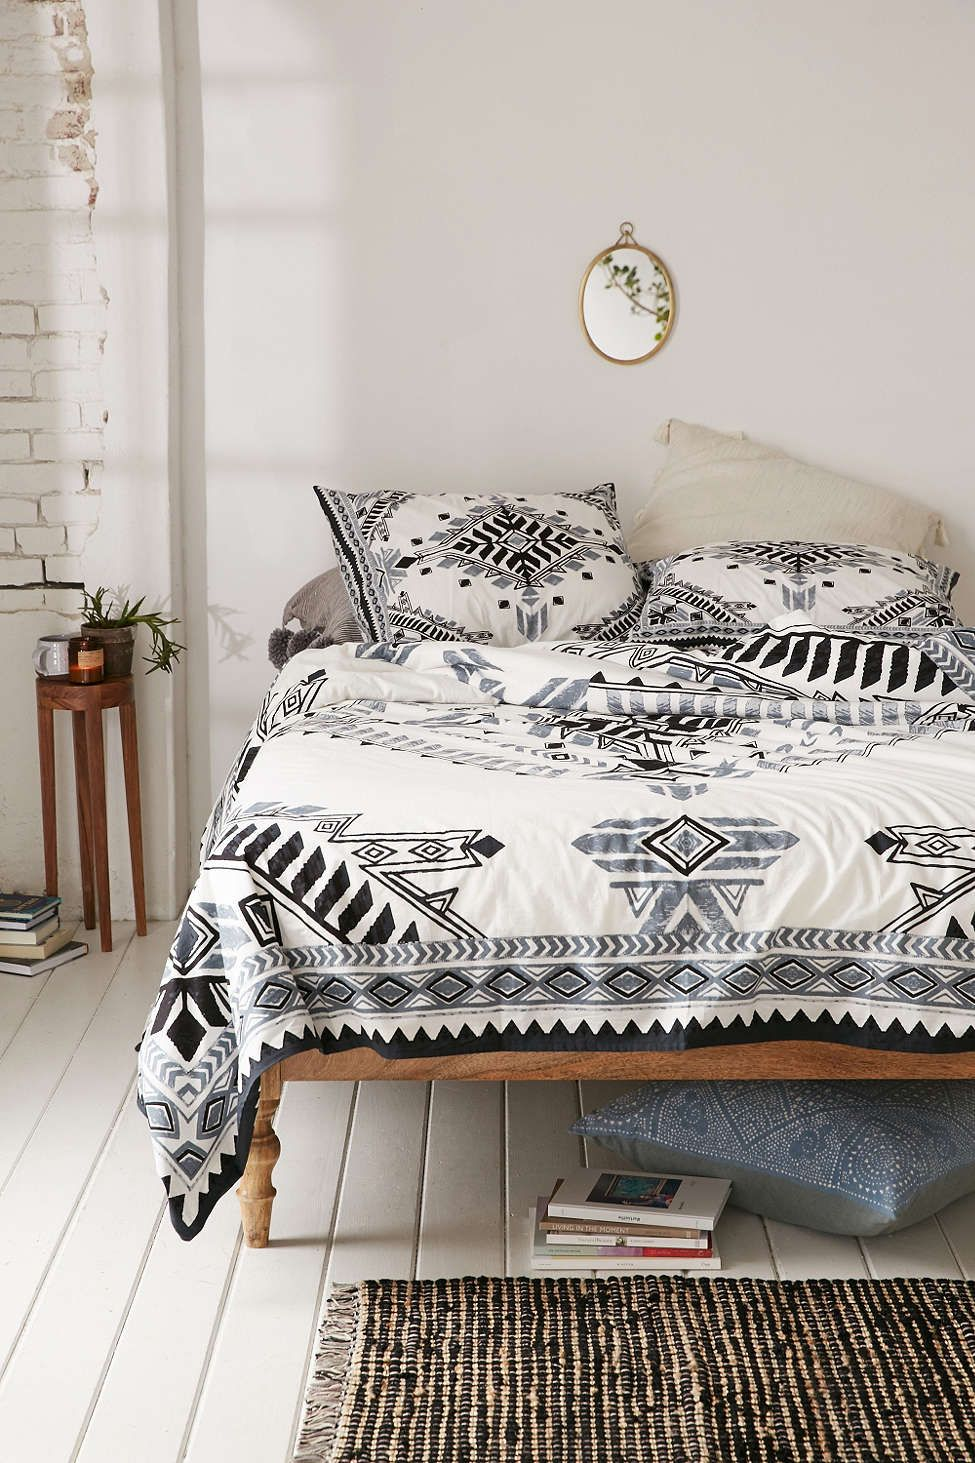 4040 Locust Quilla Duvet Cover Urban Outfitters Xx Pattern